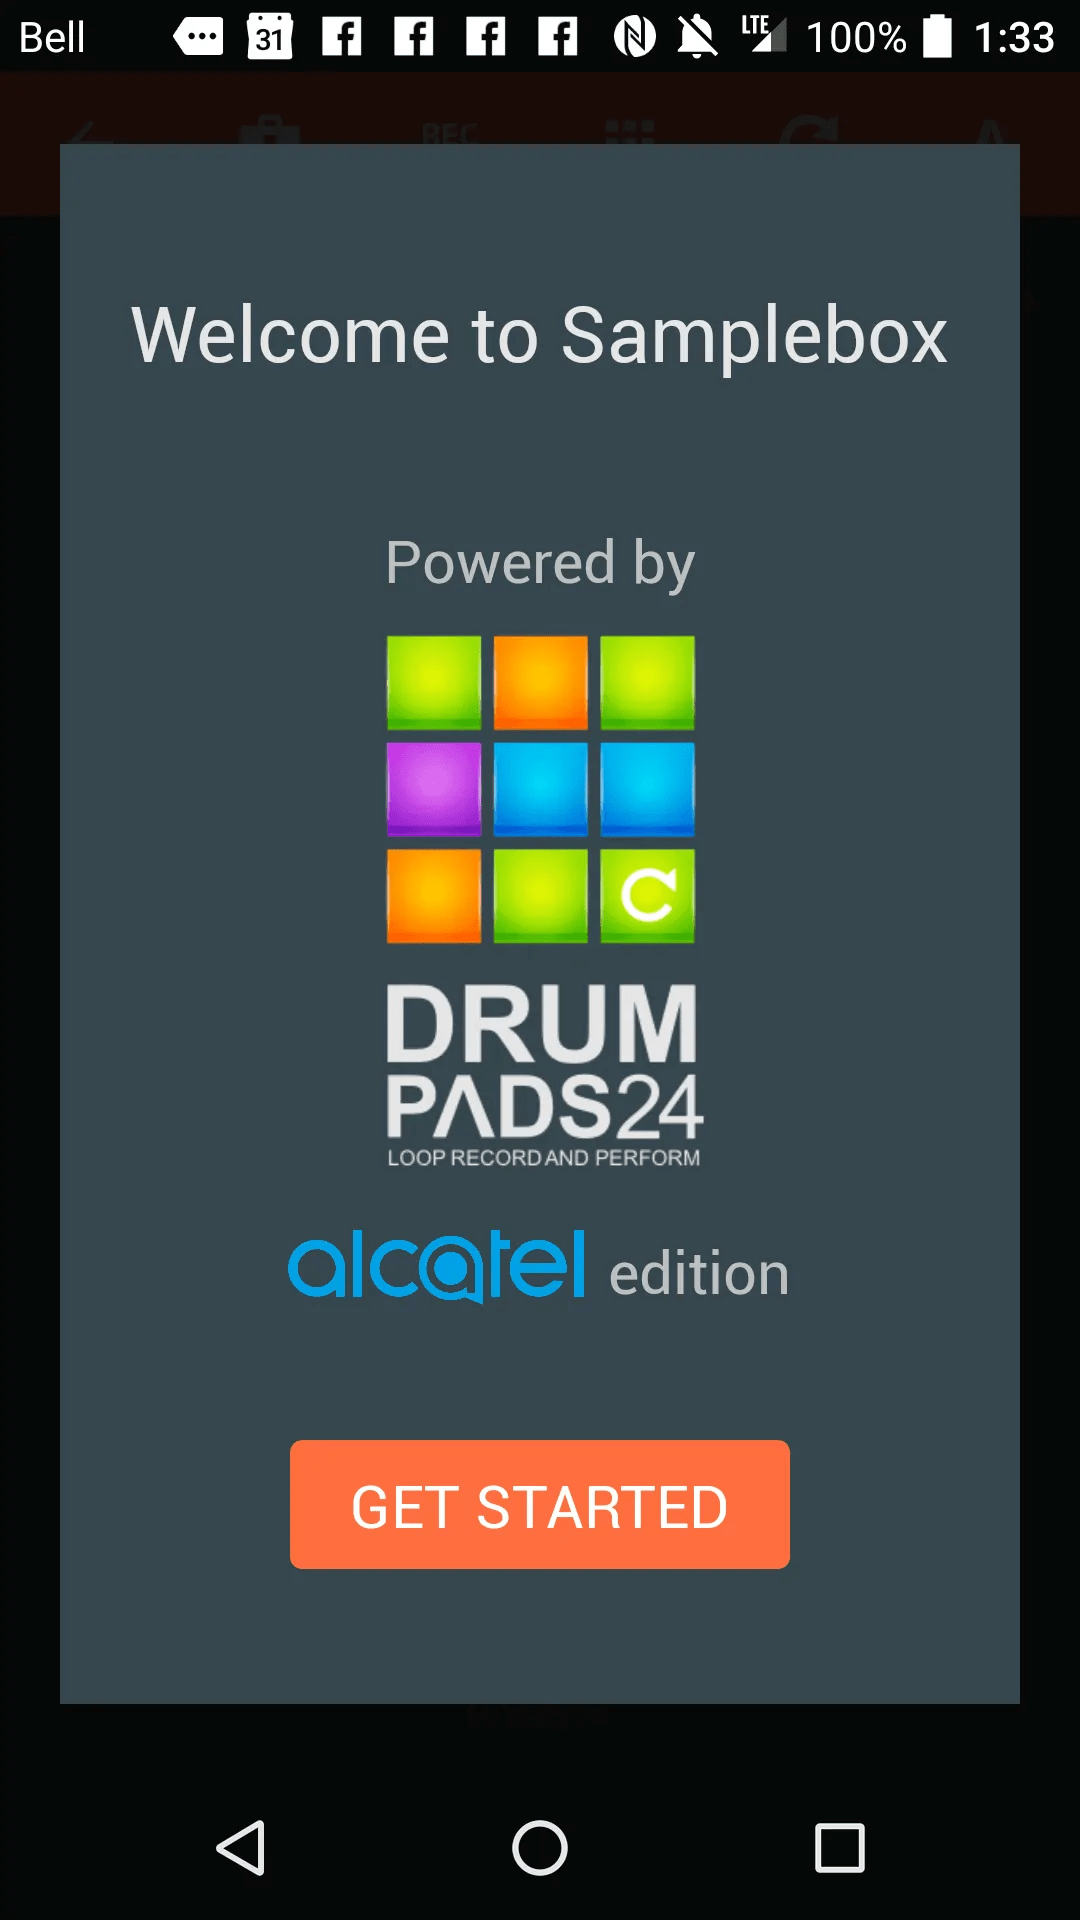 DADDY'S GOT A BRAND NEW TOY — The Alcatel Idol 4 — The Budget Smartphone You've Been Looking For! — Alcatel Drum Pads 24 Intro Screen